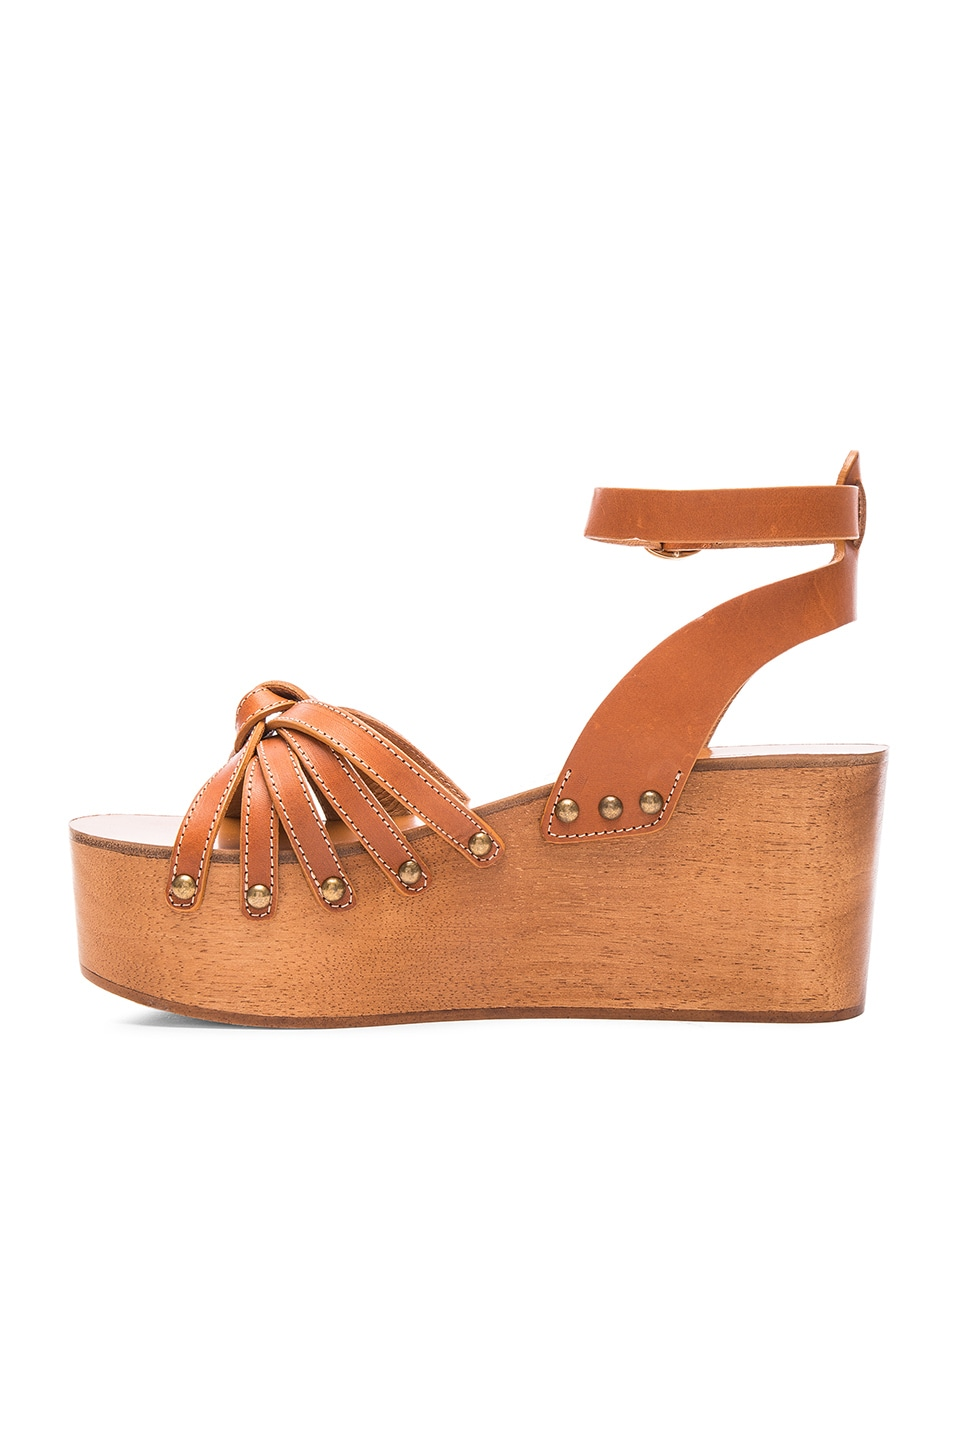 Image 5 of Isabel Marant Etoile Zia Leather Wedge Sandals in Tan